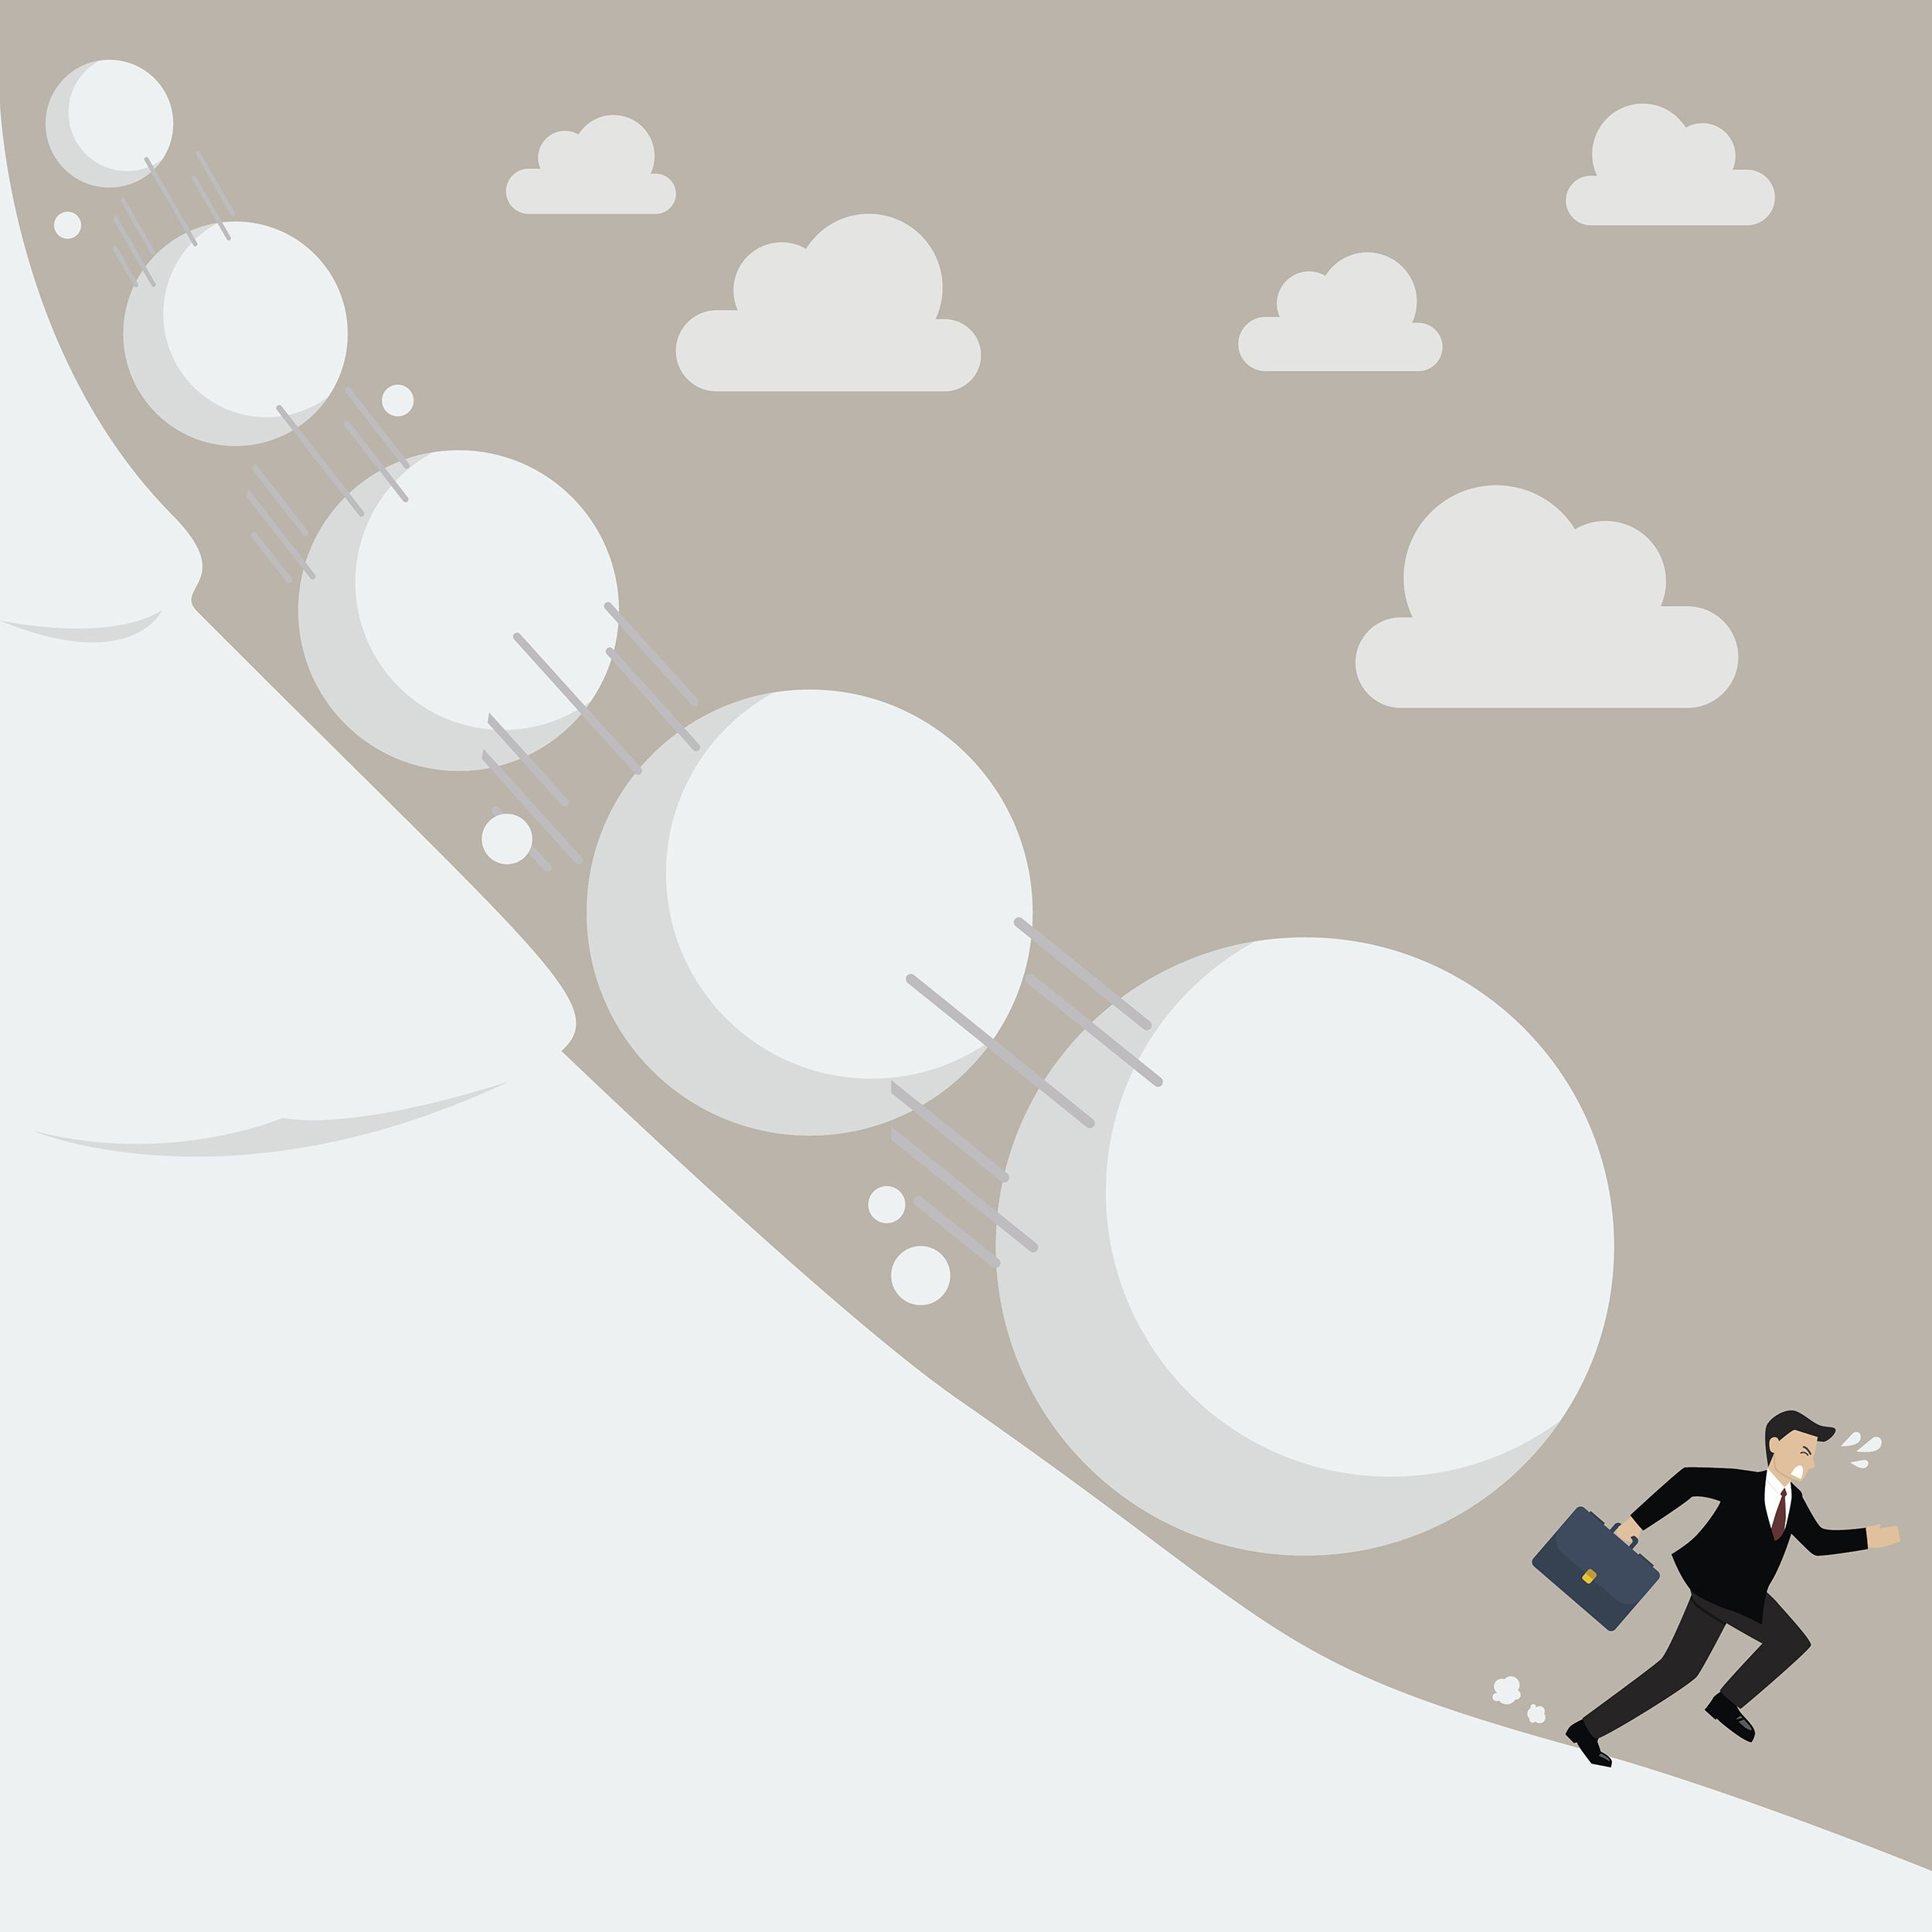 Snowballing Integration Requirements That Challenge Cloud-Services Organizations